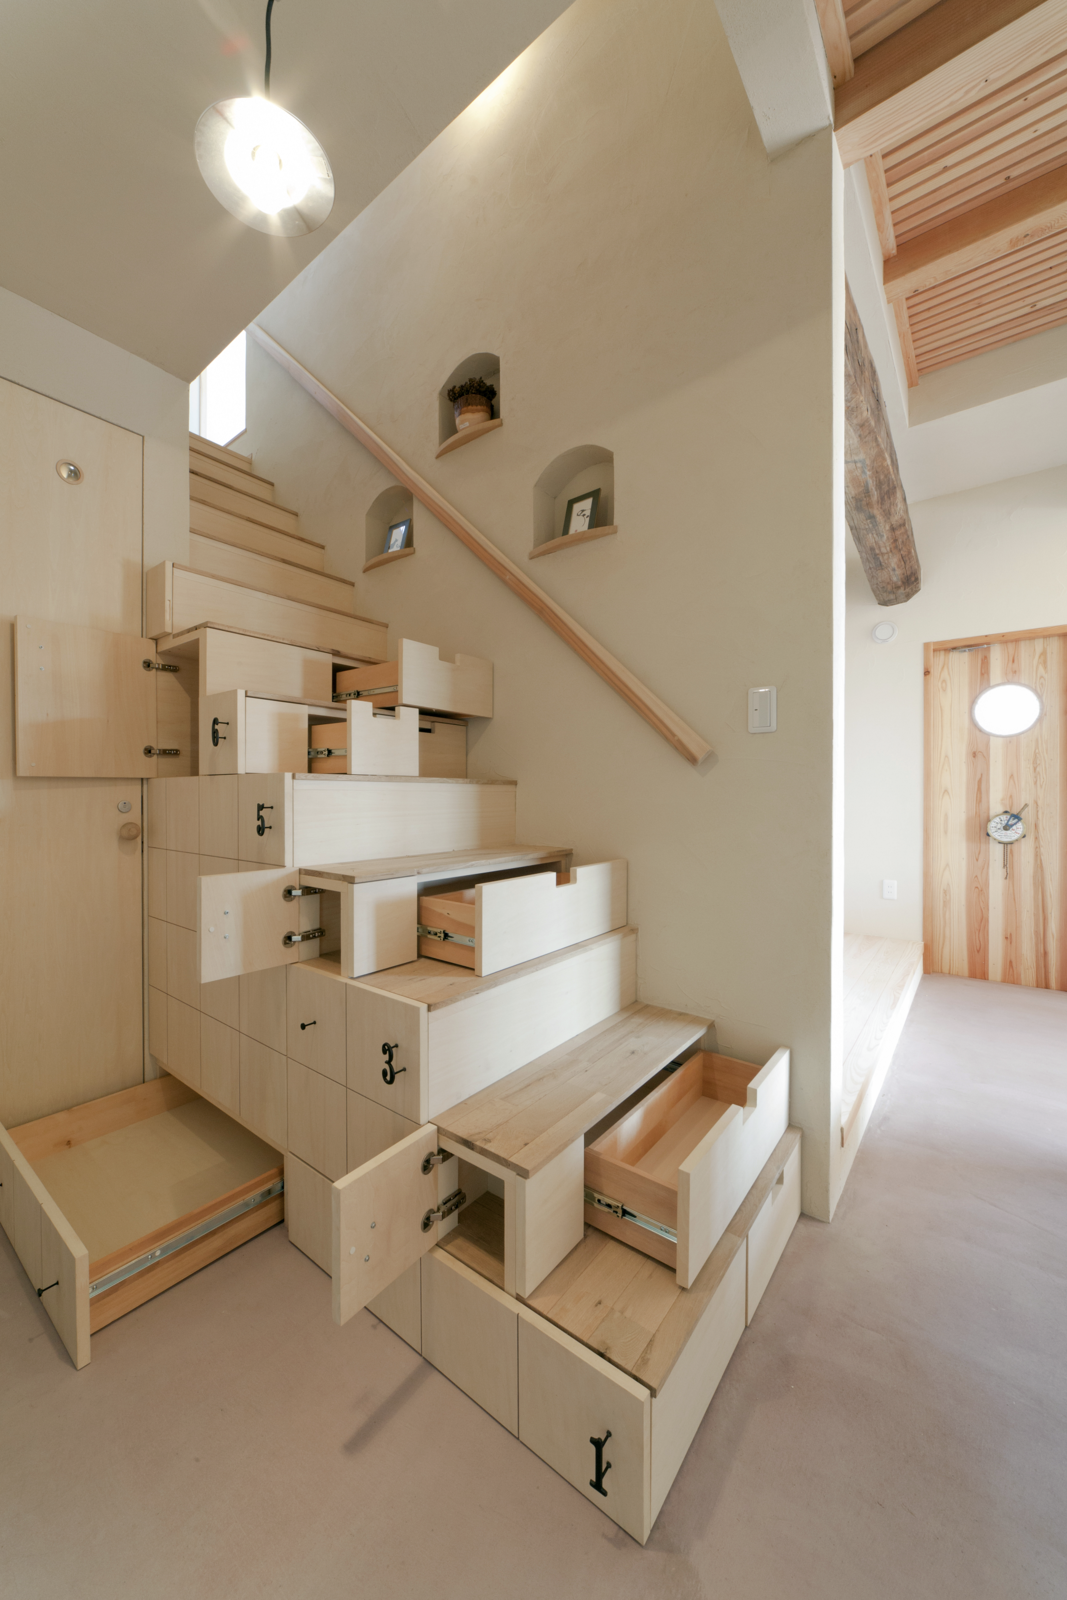 Lifestyle Koubou Stairs pg 113  Photo 8 of 16 in Gestalten's New Book Shows How to Transform Small Spaces Into Design Marvels